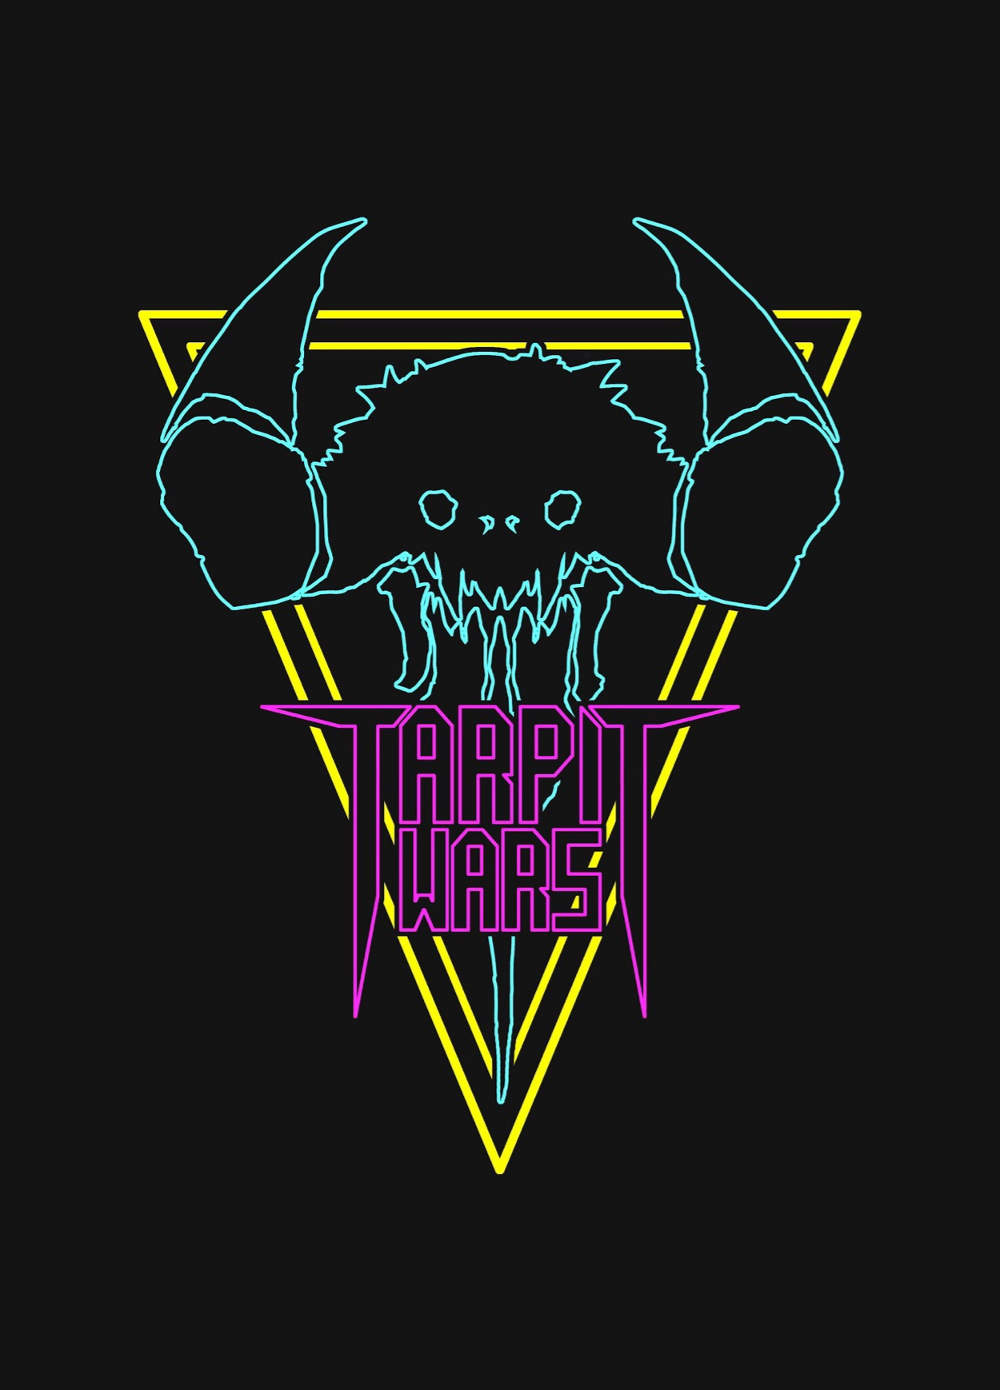 Tar Pit Wars logo featuring an outlined creature skull in neon colors